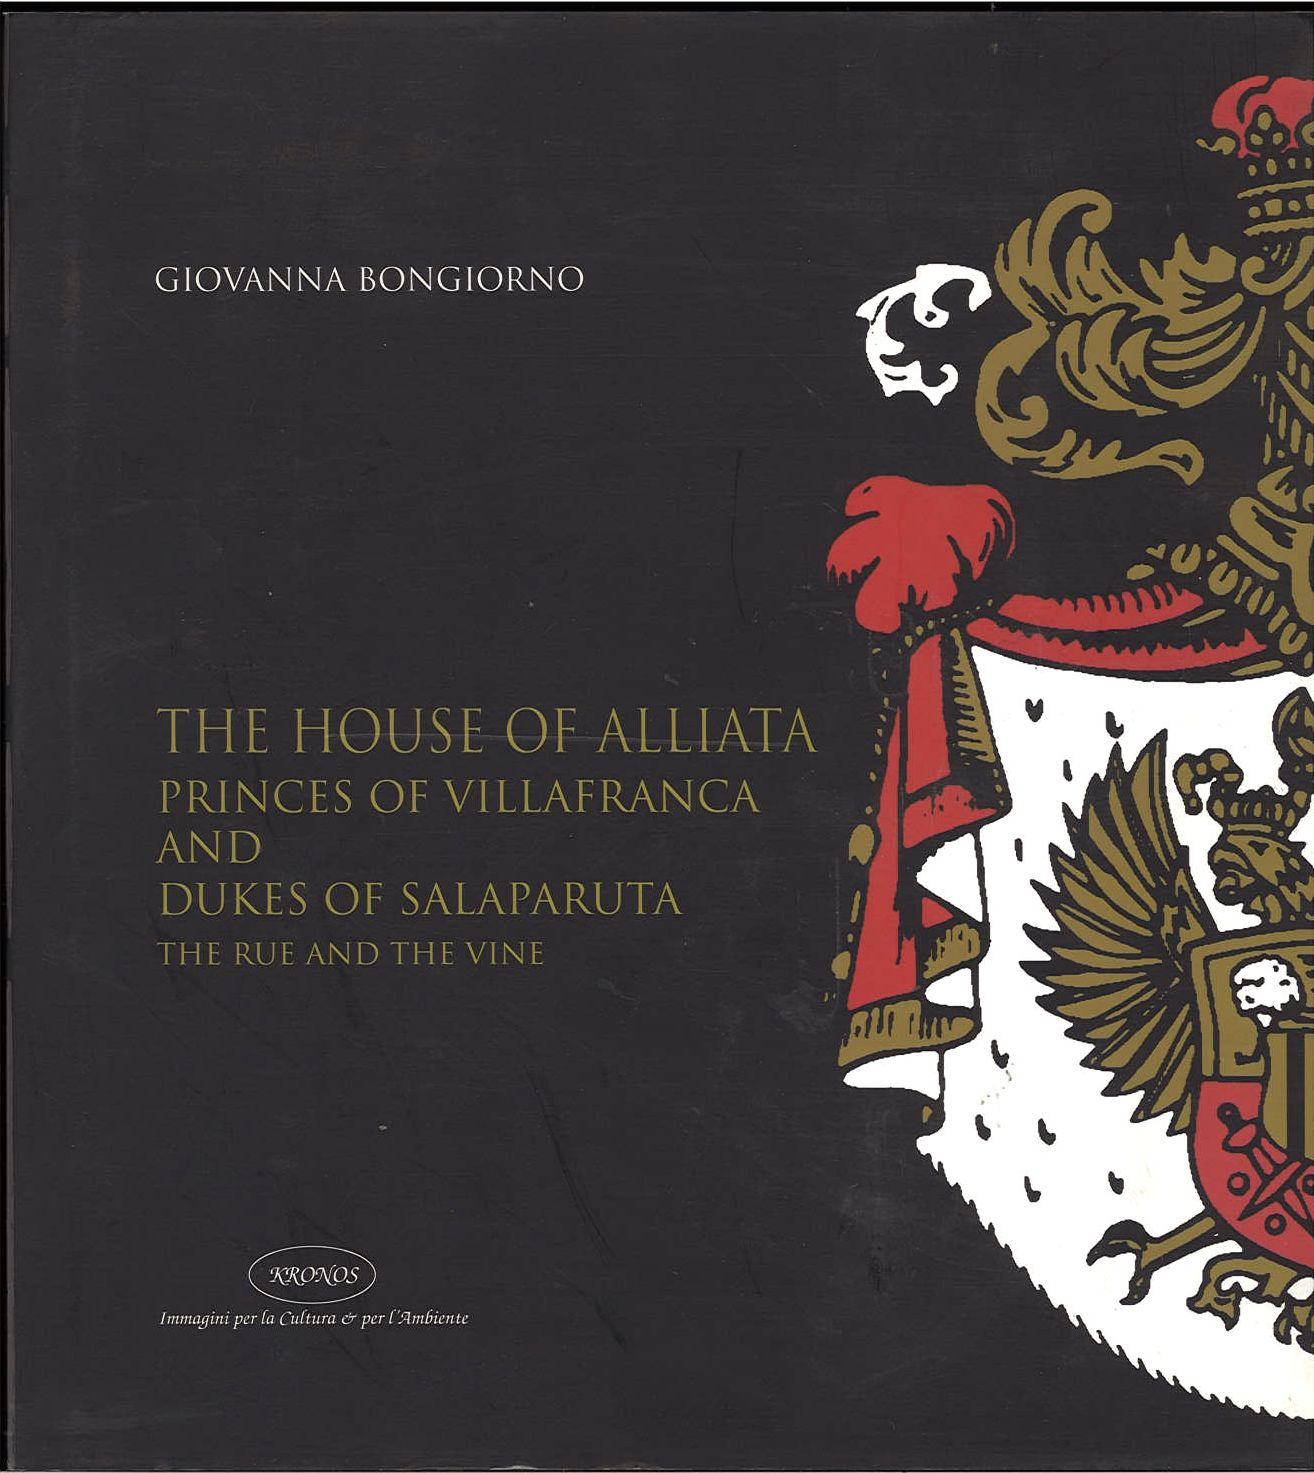 THE HOUSE OF ALLIATA - GIOVANNA BONGIORNO - ENGLISH TEXT